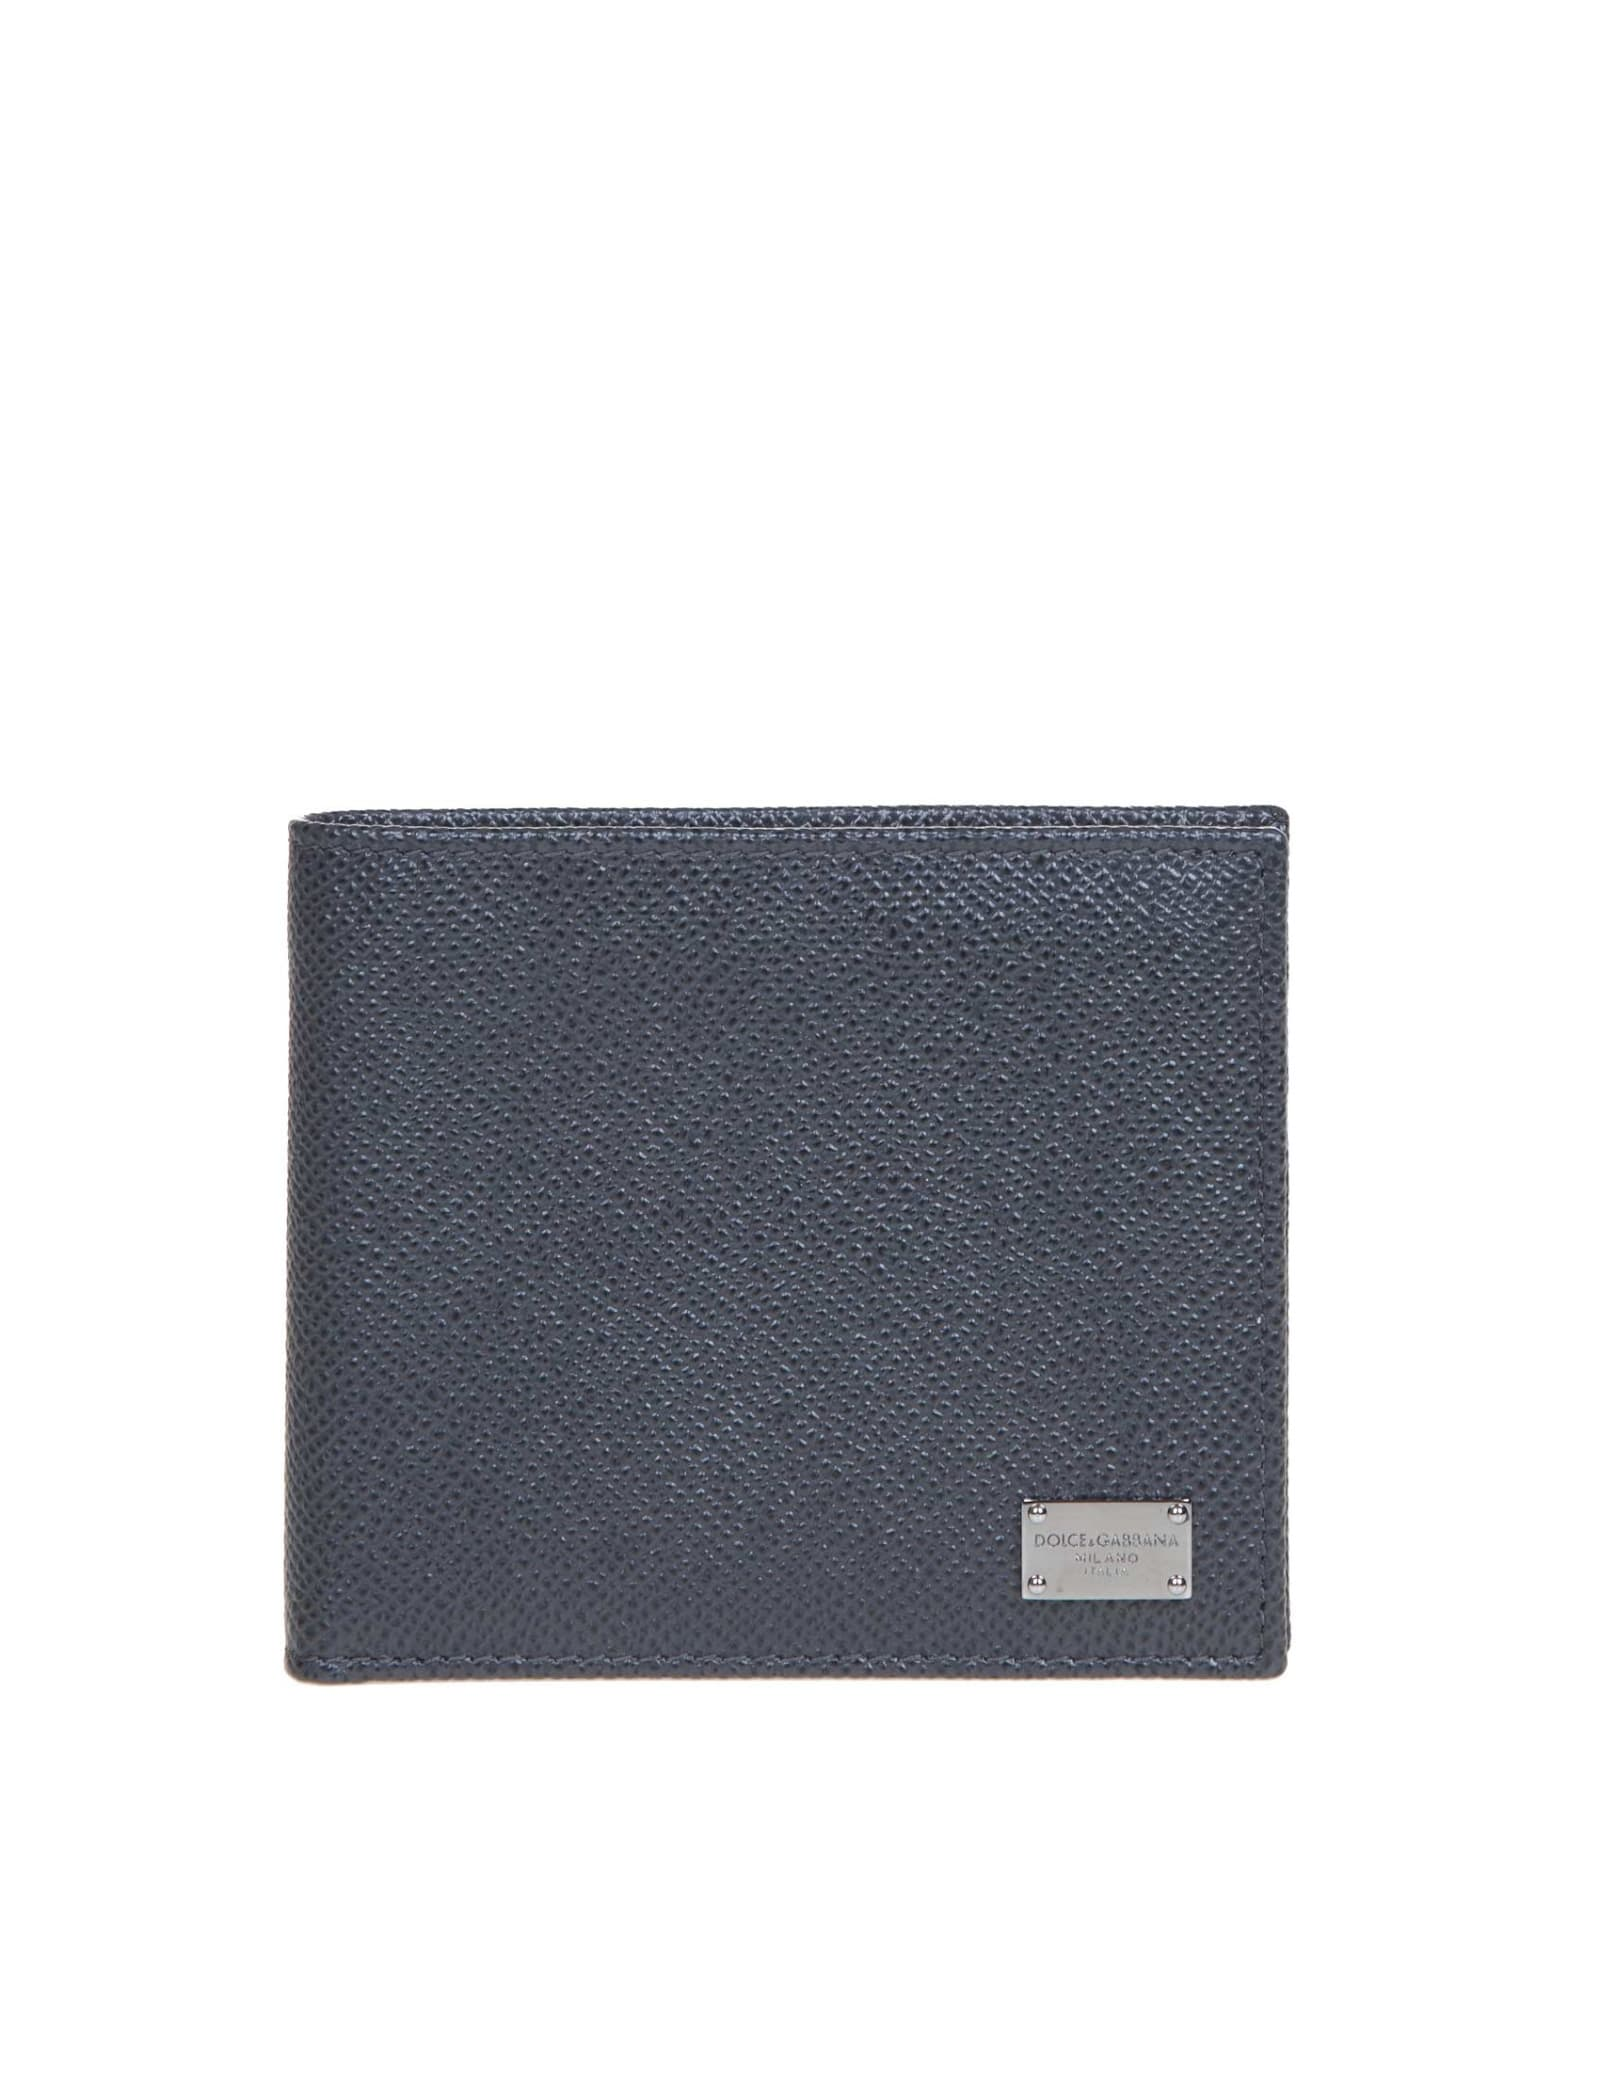 Dolce & Gabbana Wallet In Calf Leather